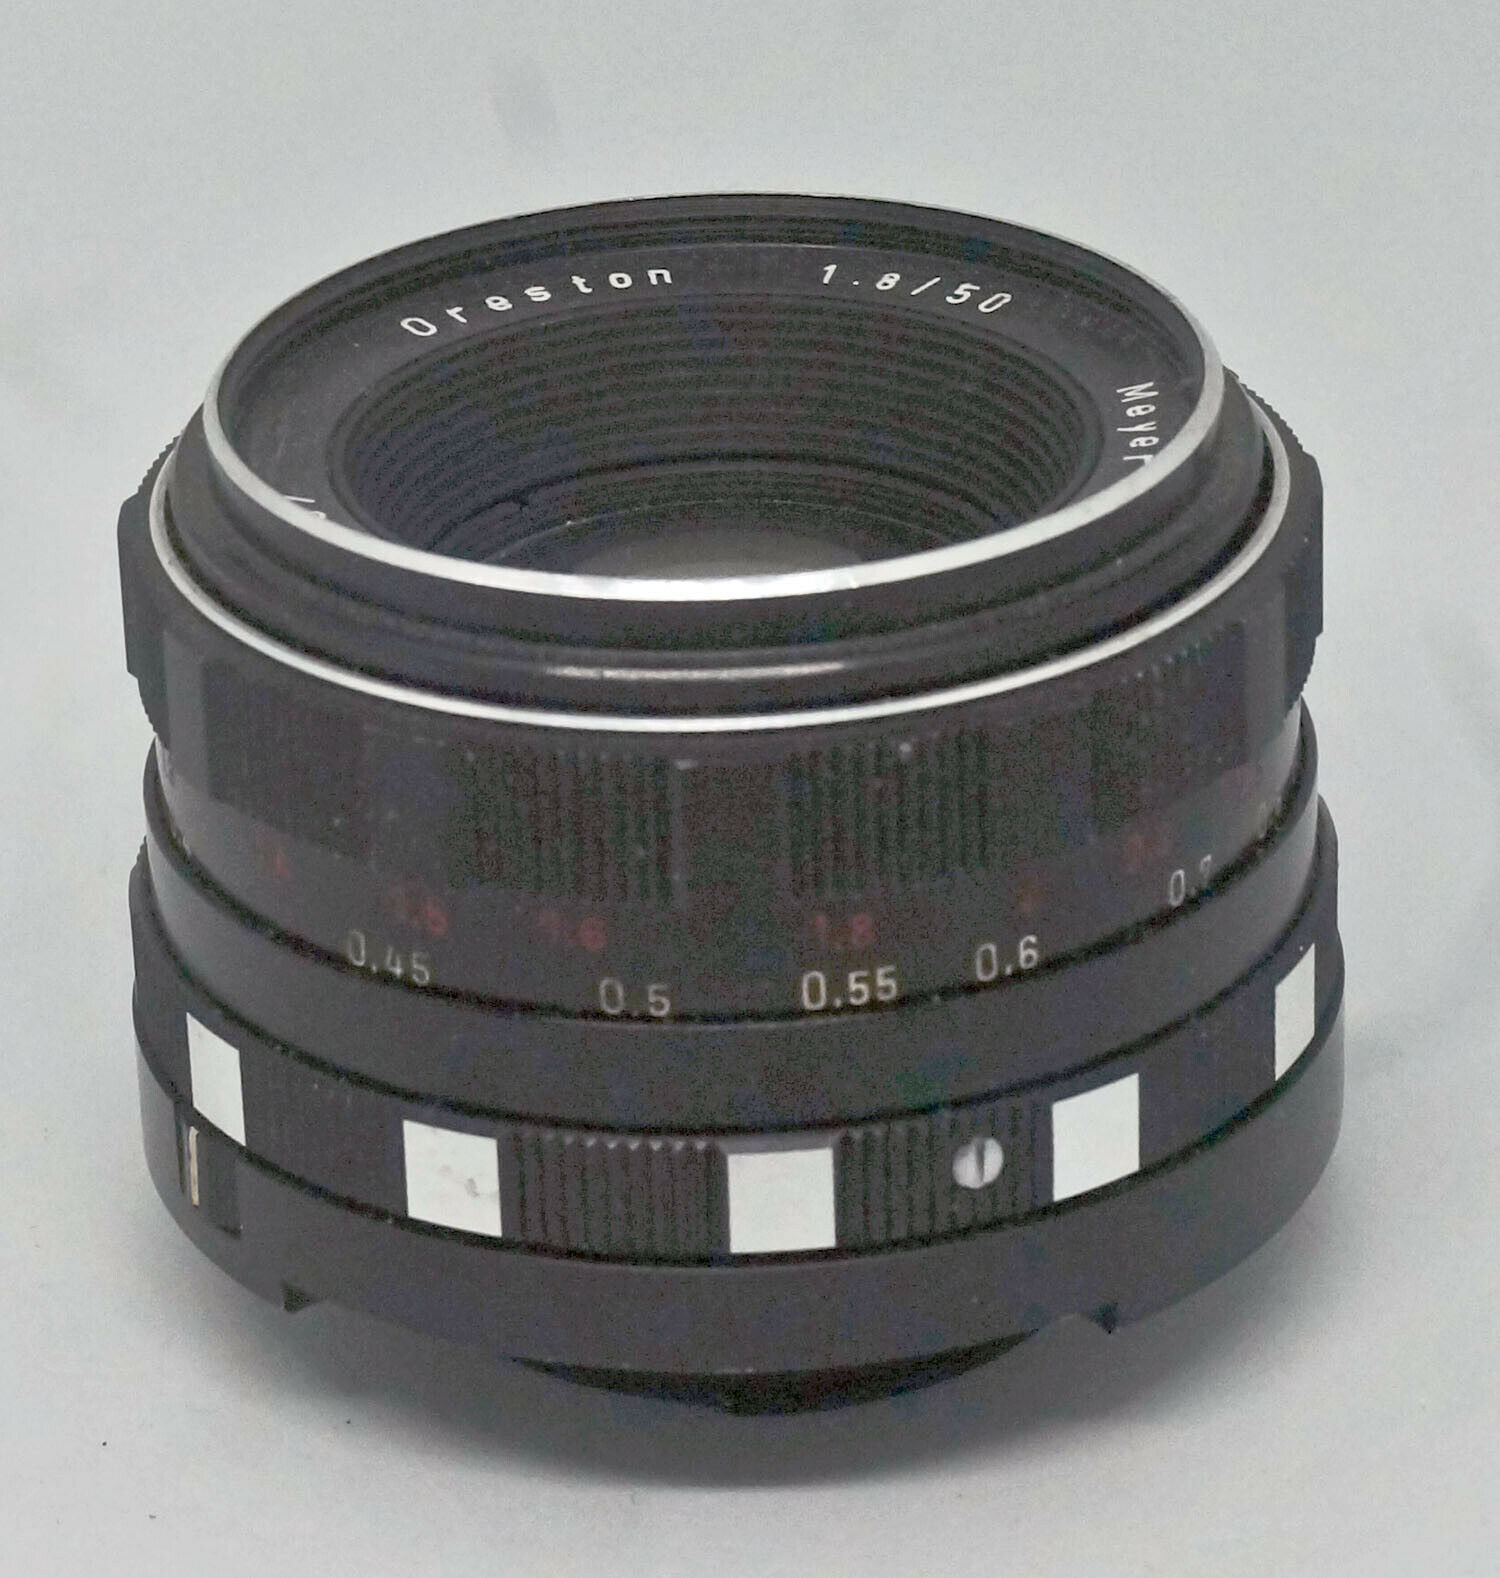 PRIME LENS For SLR Camera With Topcon/Exacta Mount ORESTON 1.8-50 VG 0033  - $50.00